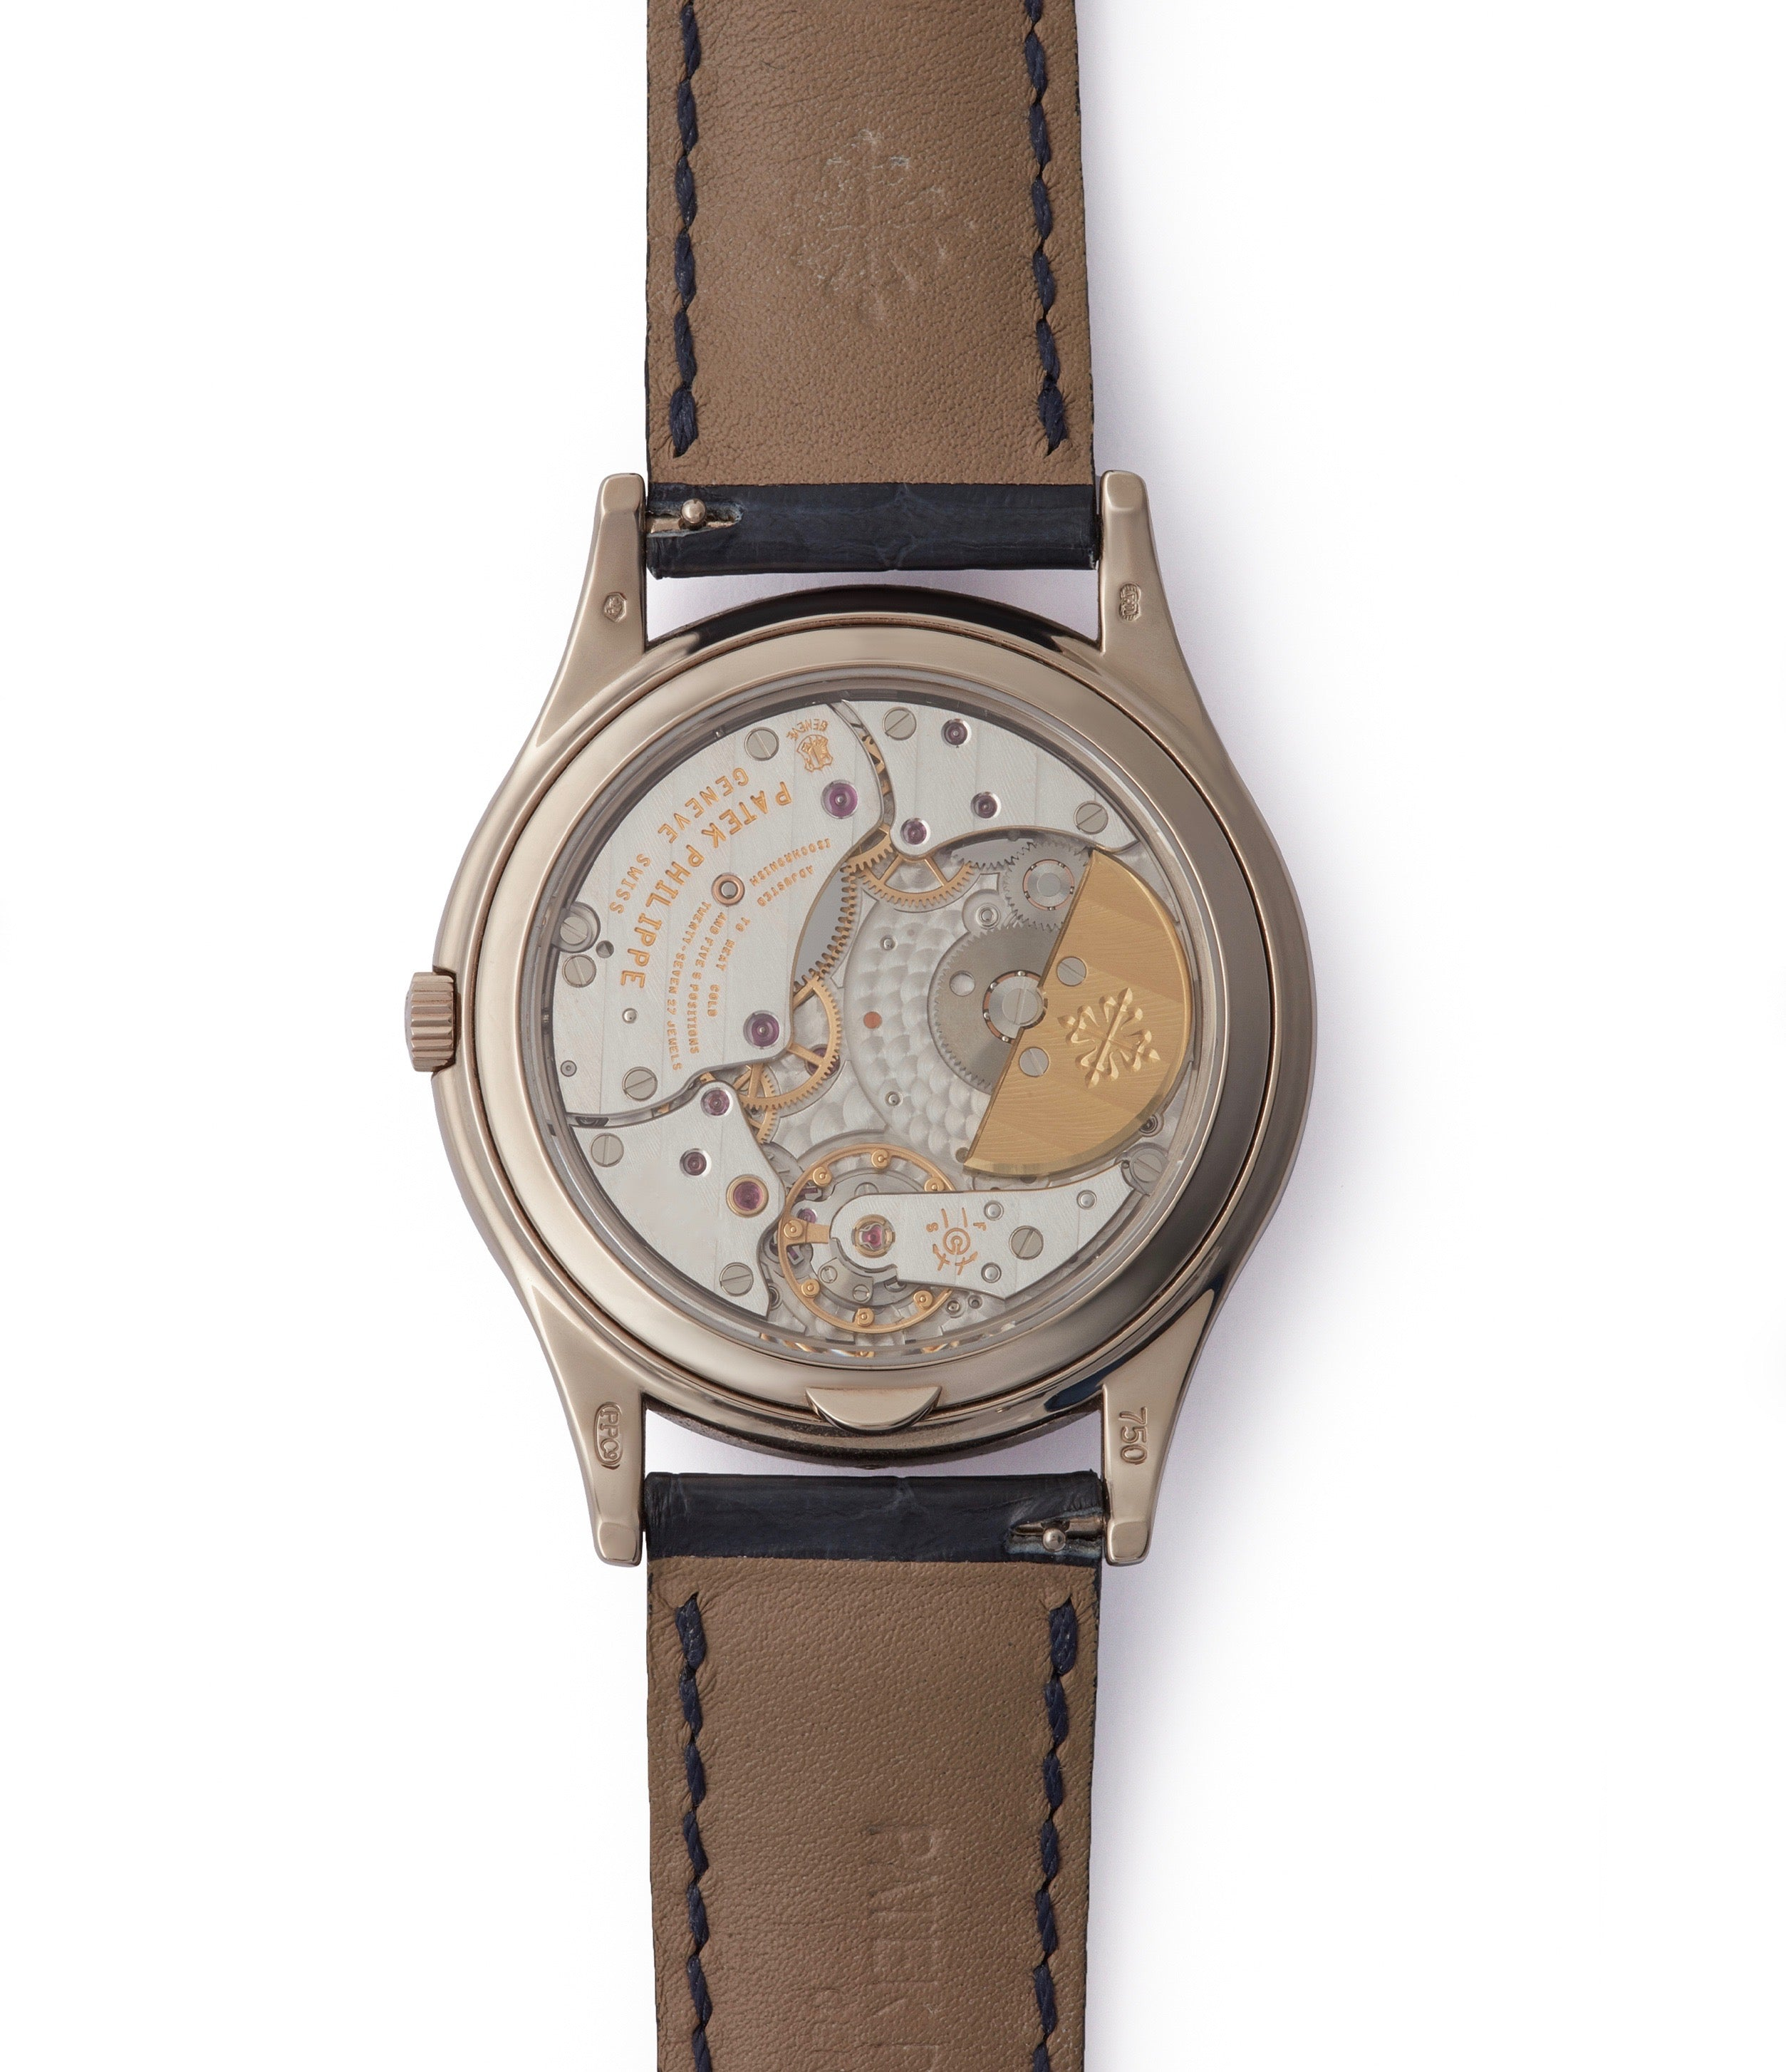 automatic Patek Philippe Perpetual Calendar 5140G moonphase white gold silver dial pre-owned dress watch for sale online A Collected Man London UK specialist rare watches